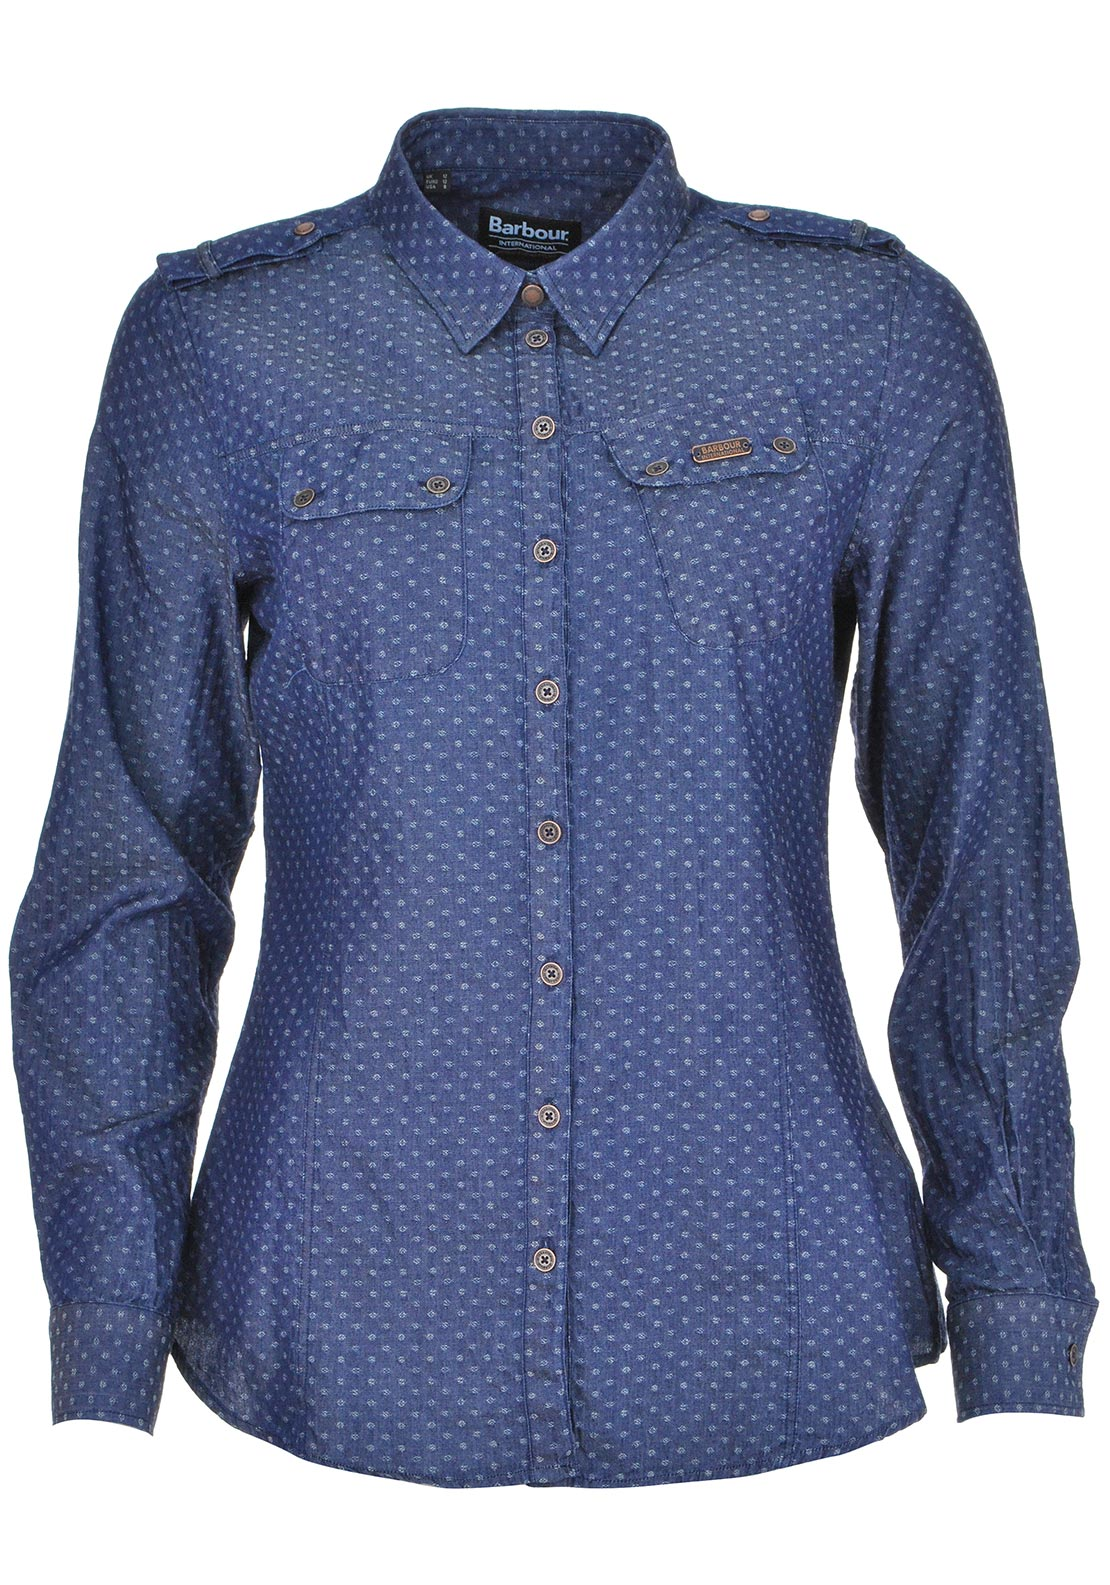 Barbour International Womens Bana Vie Denim Shirt, Denim Blue